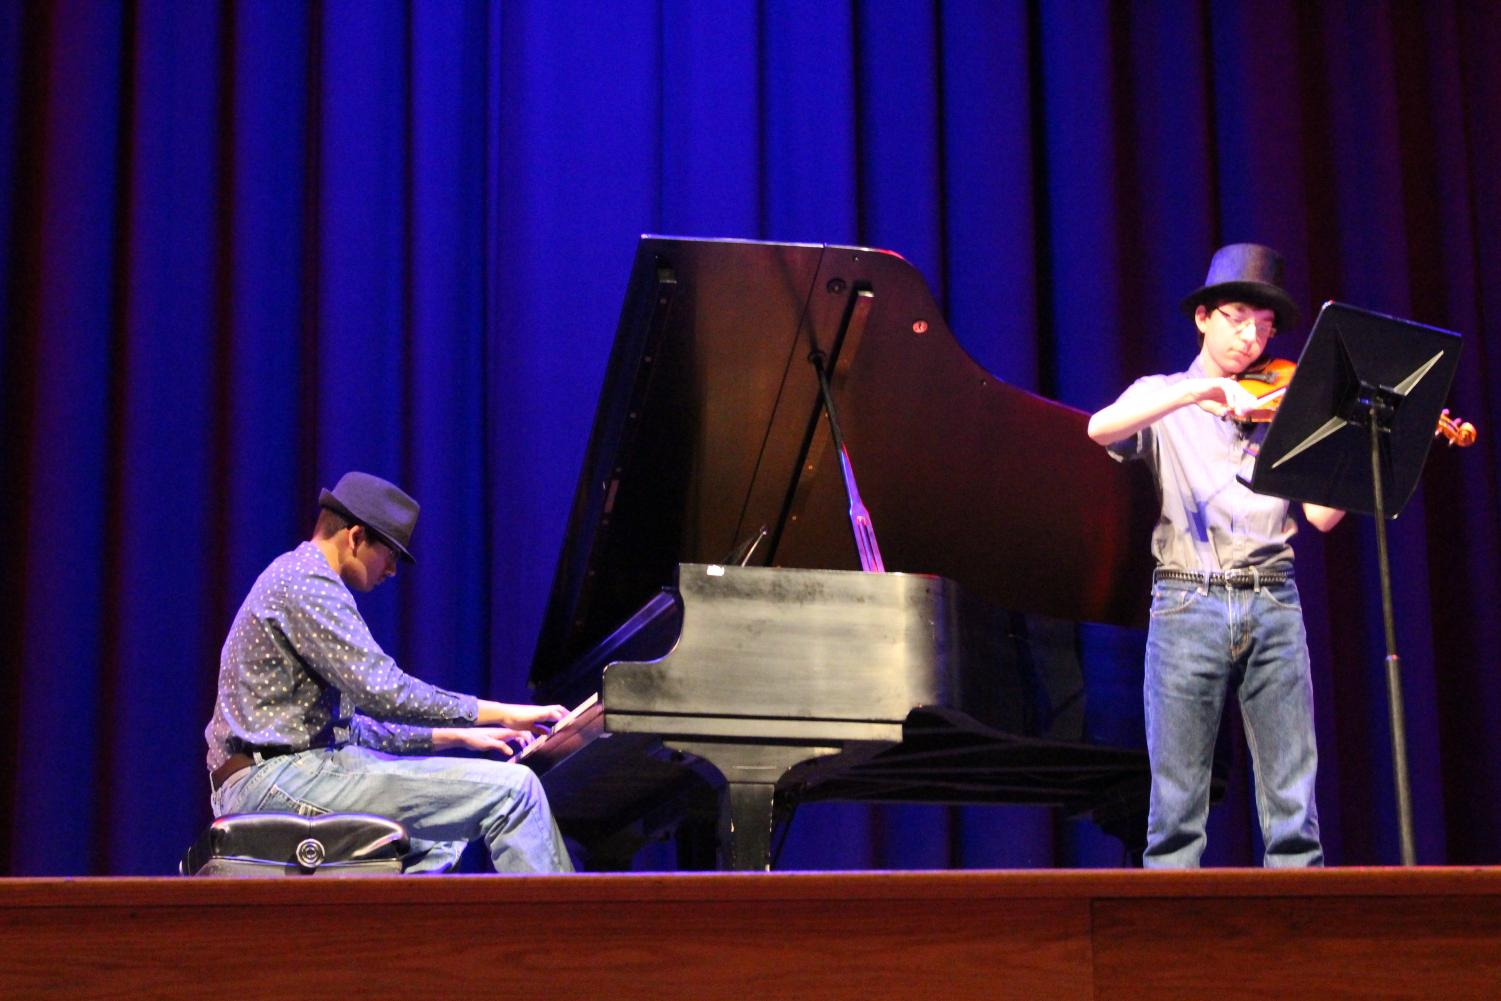 Sophomores Rohit Kandala and Coleman Bongardt perform the opening act of the talent show. [Photo by Maggie Sisler]